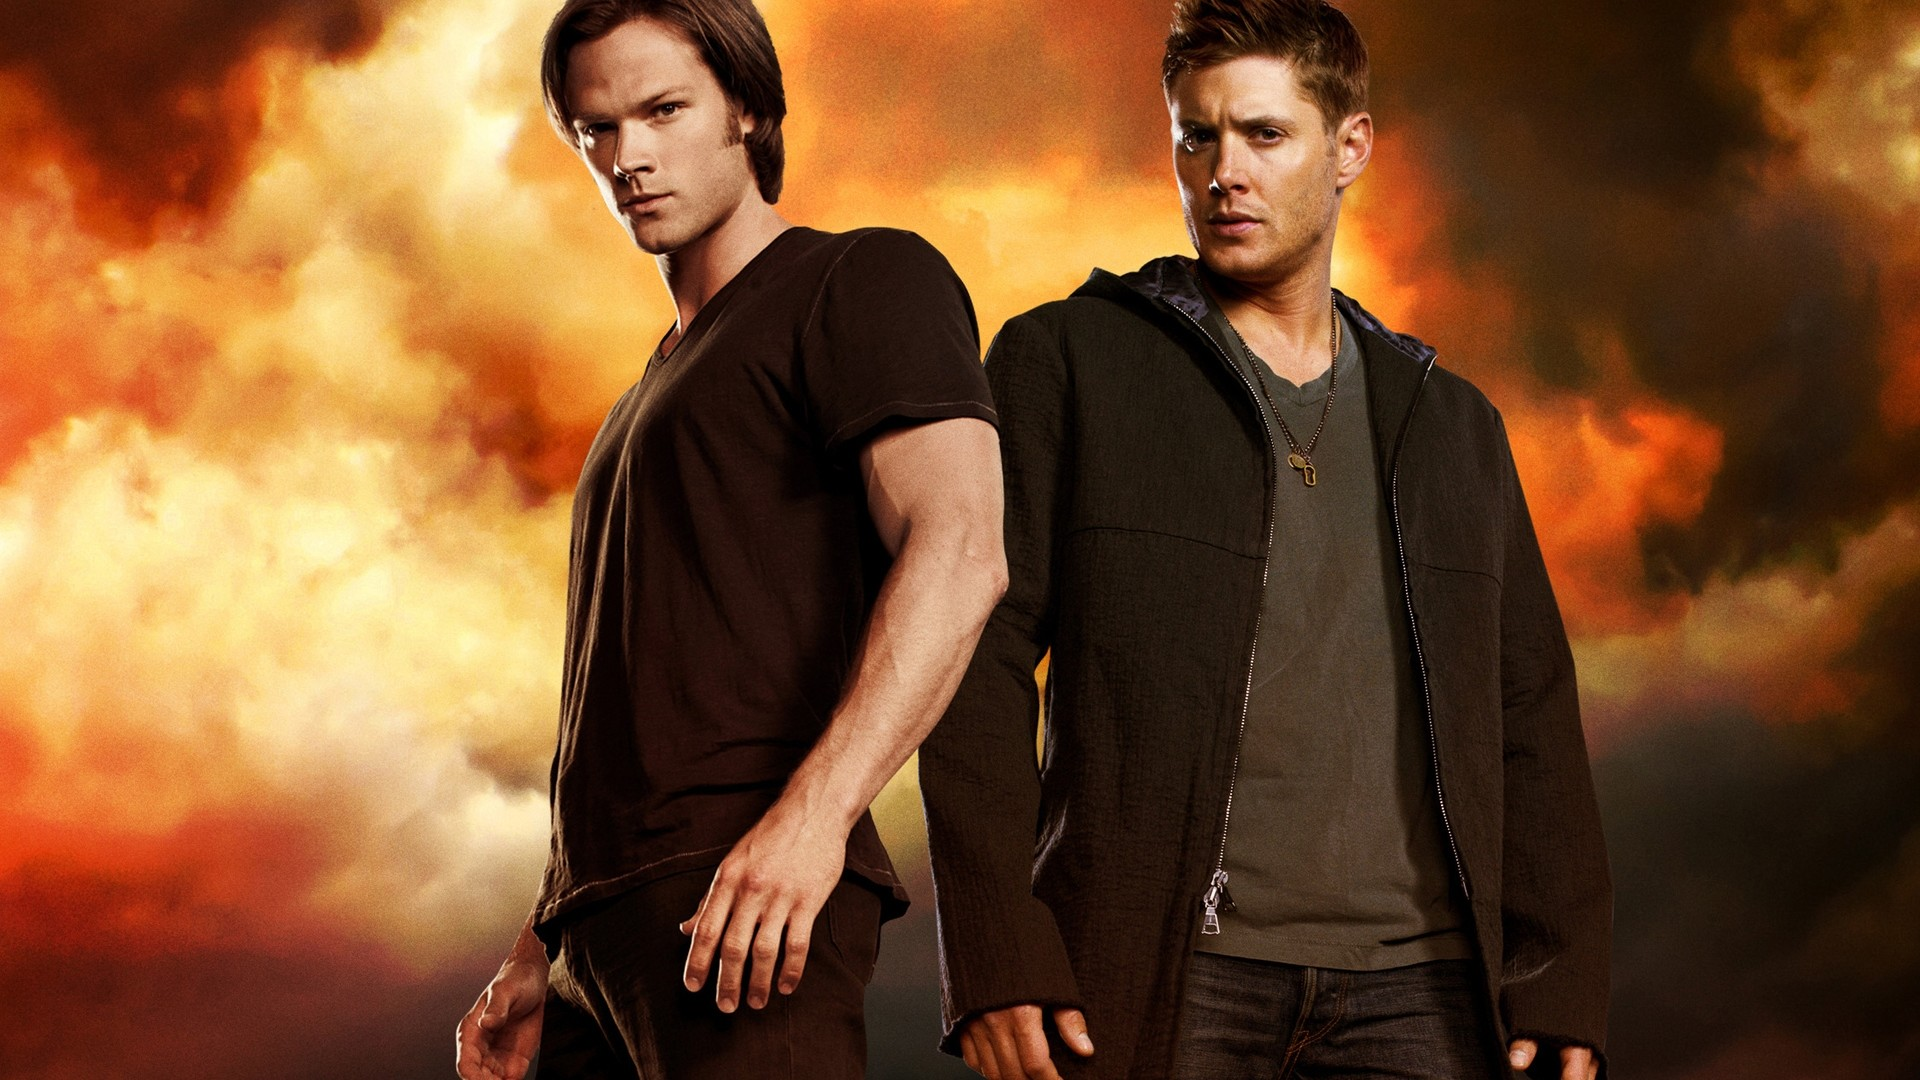 The best SUPERNATURAL background/ wallpaper for any device